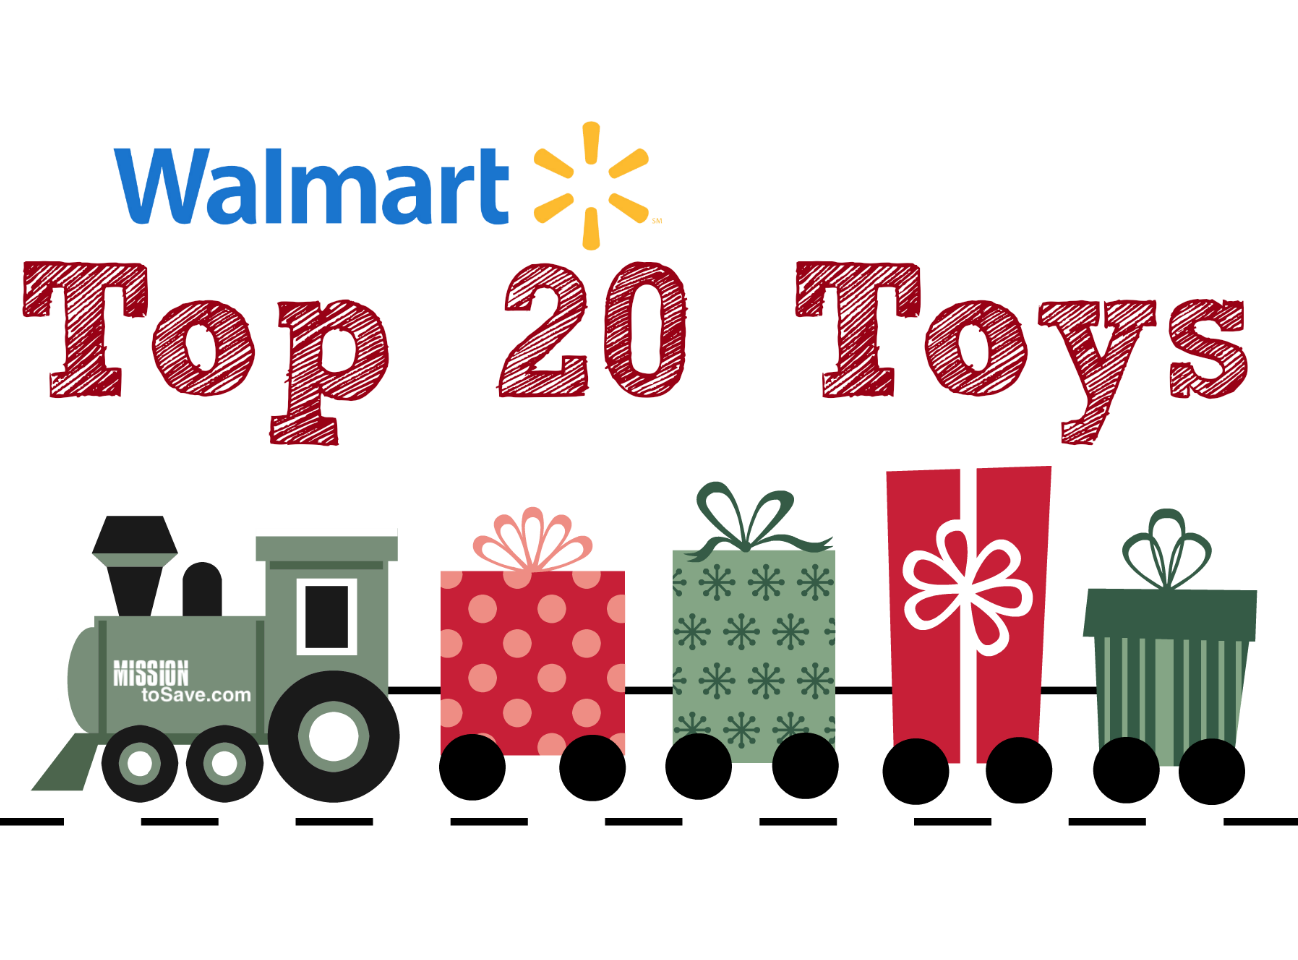 Walmart Top Toys 2014 : Walmart top toys for holiday season mission to save